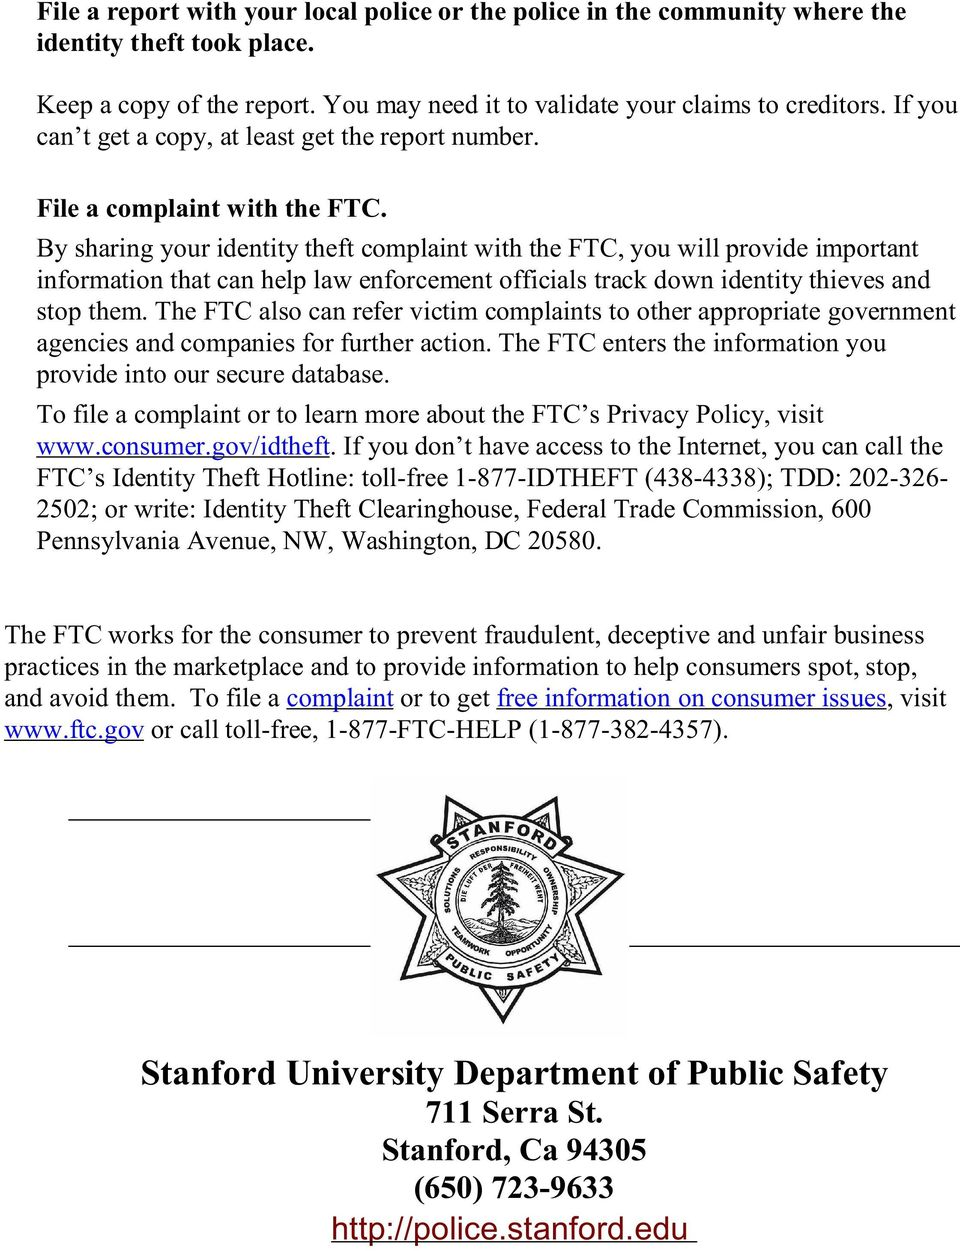 By sharing your identity theft complaint with the FTC, you will provide important information that can help law enforcement officials track down identity thieves and stop them.